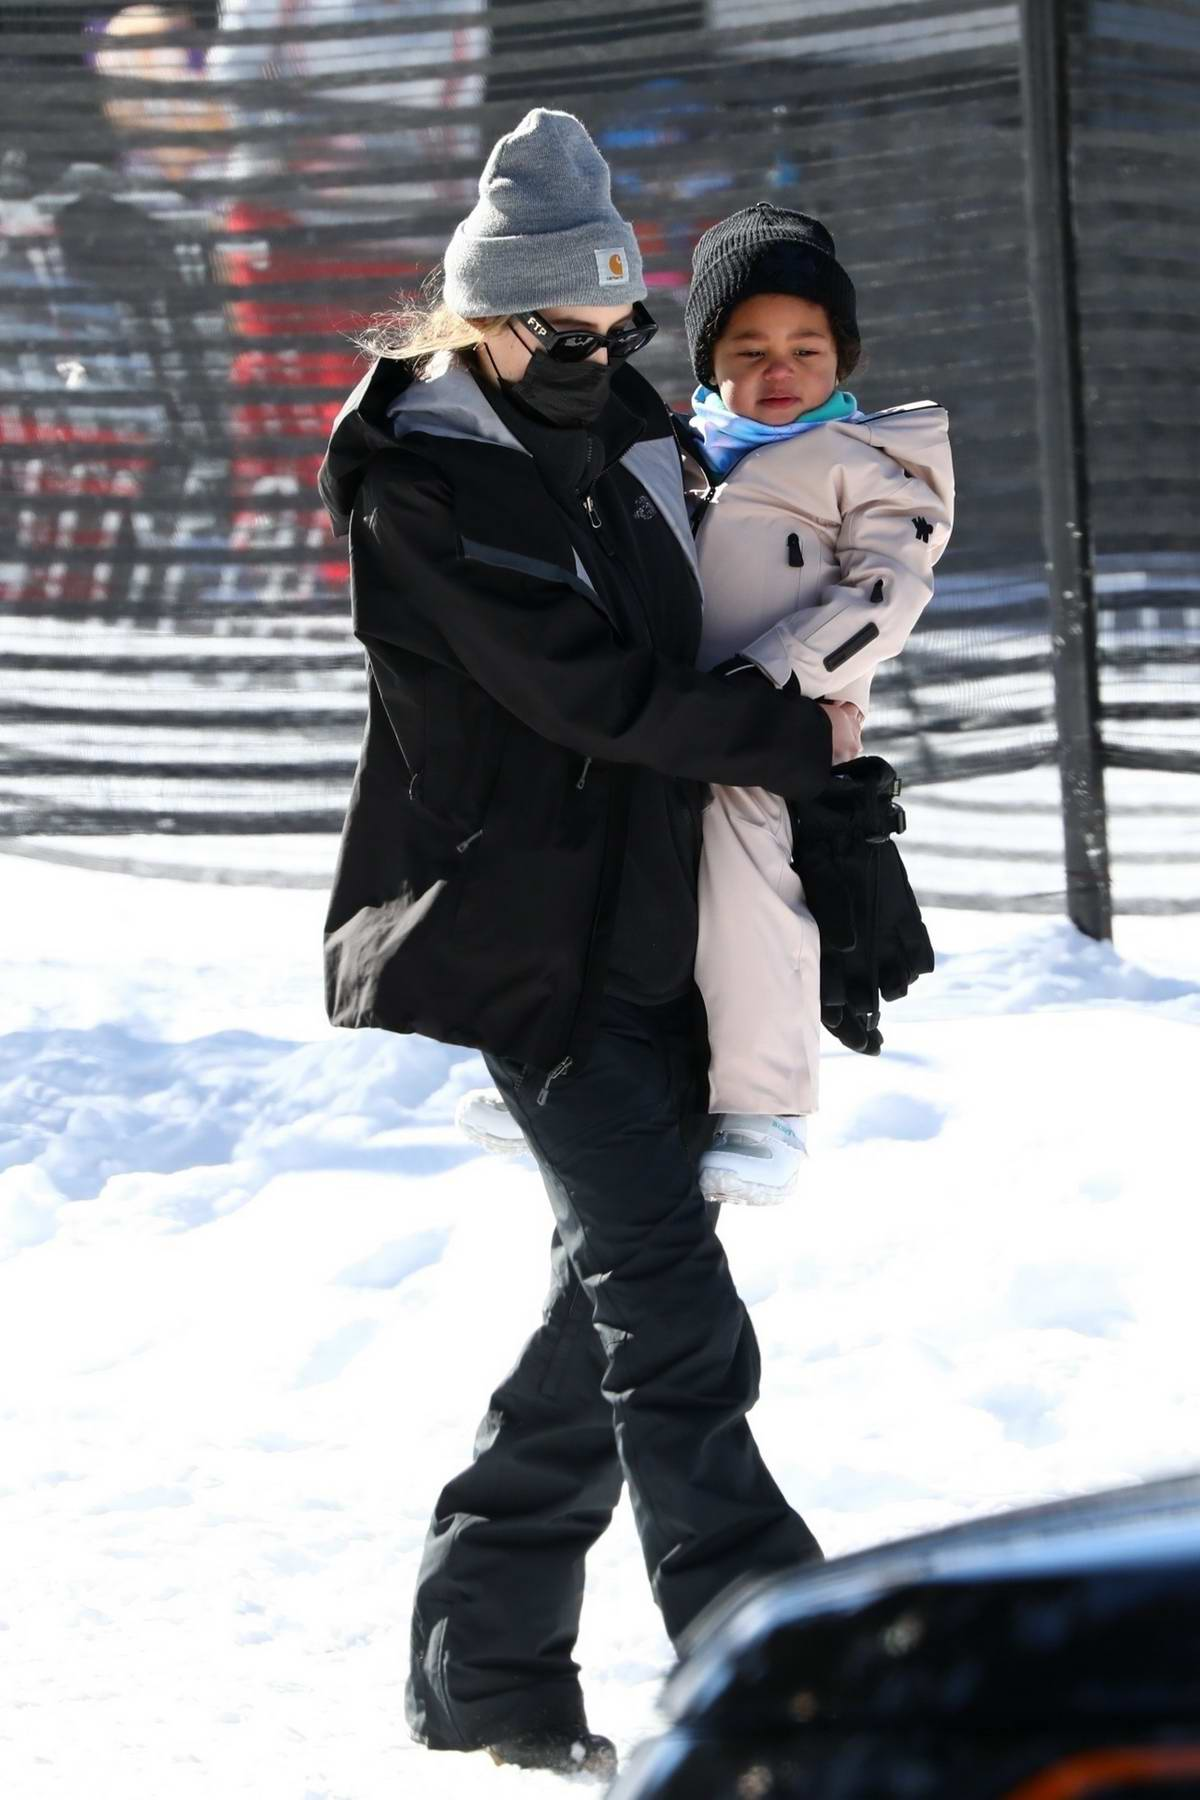 Kylie Jenner and Travis Scott spent the first day of 2021 hitting the bunny slopes with little Stormi in Aspen, Colorado